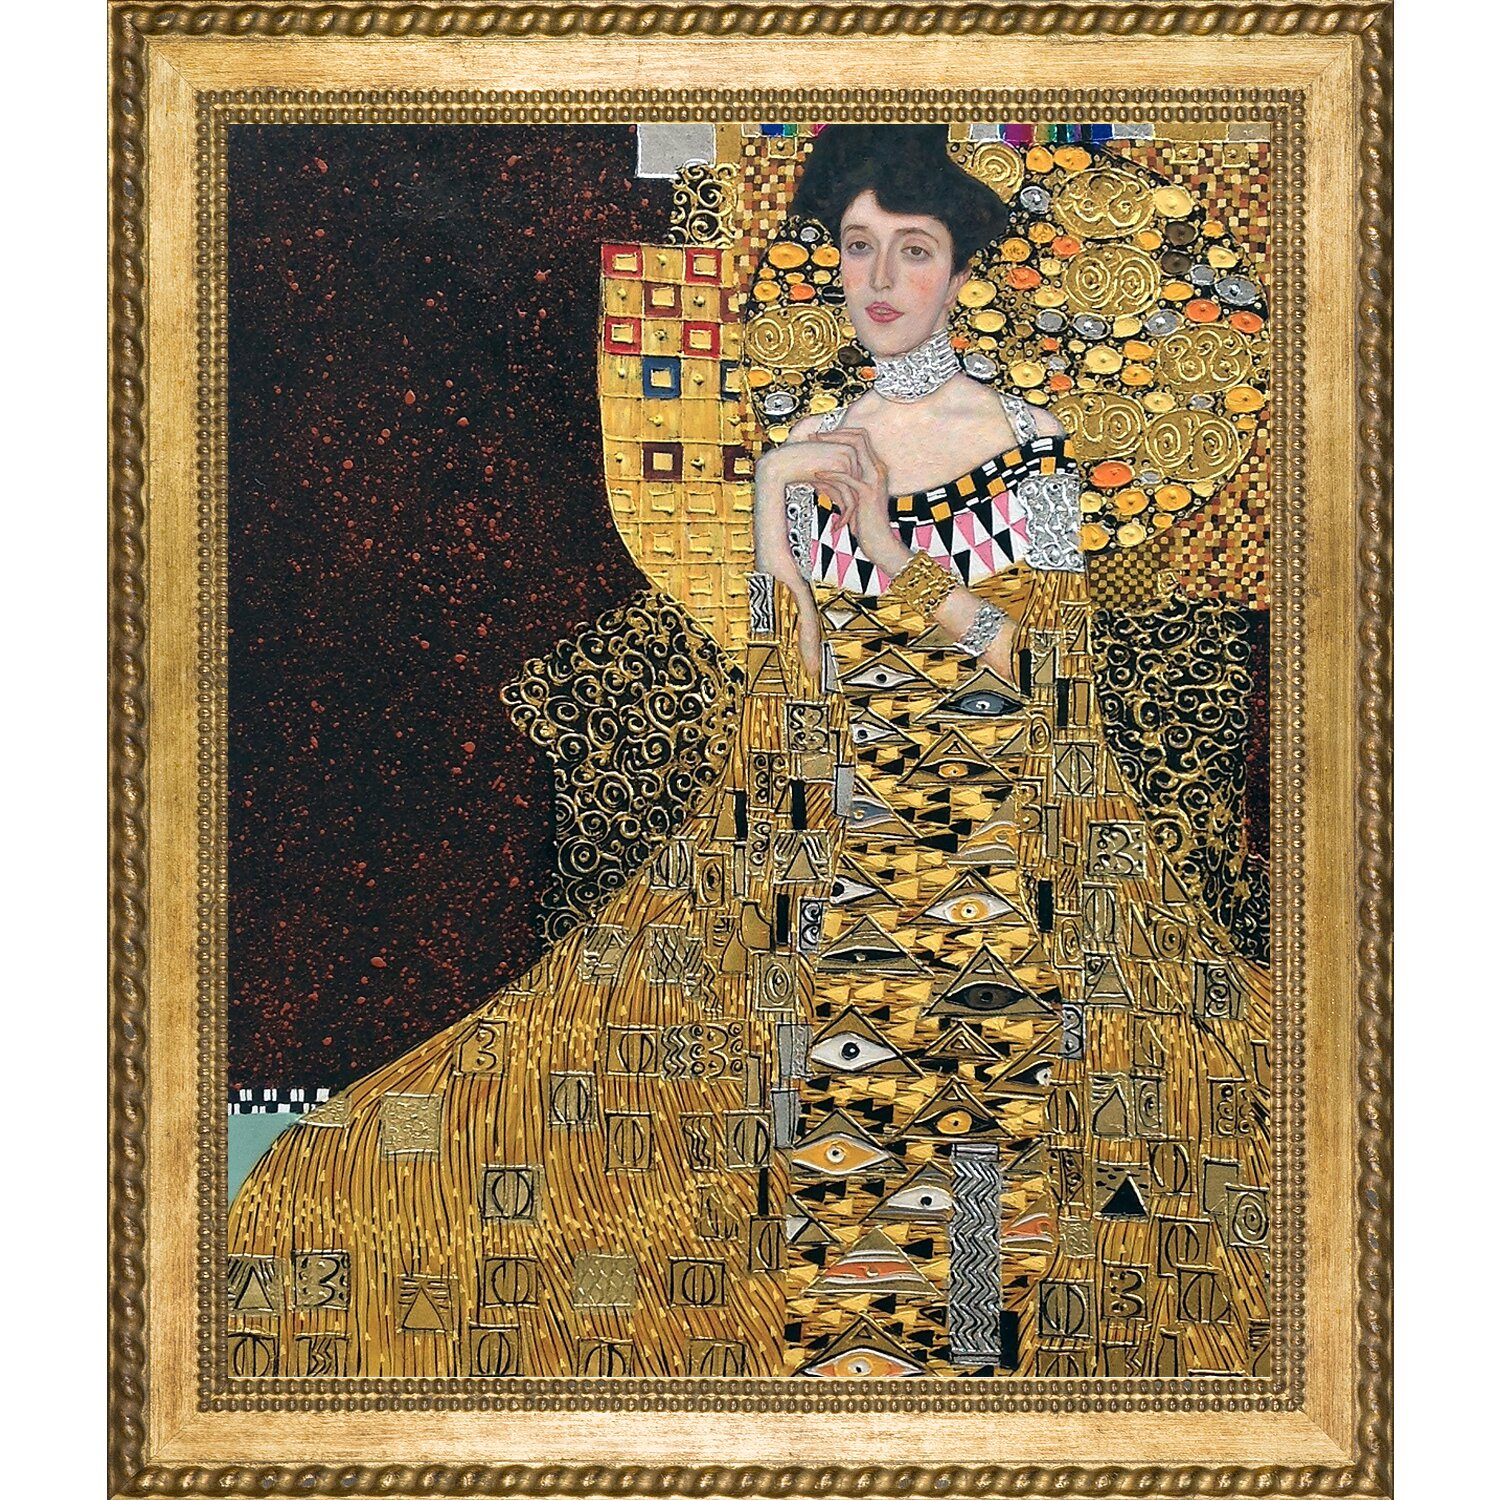 la pastiche 39 portrait of adele bloch bauer i metallic embellished 39 by gustav klimt framed. Black Bedroom Furniture Sets. Home Design Ideas